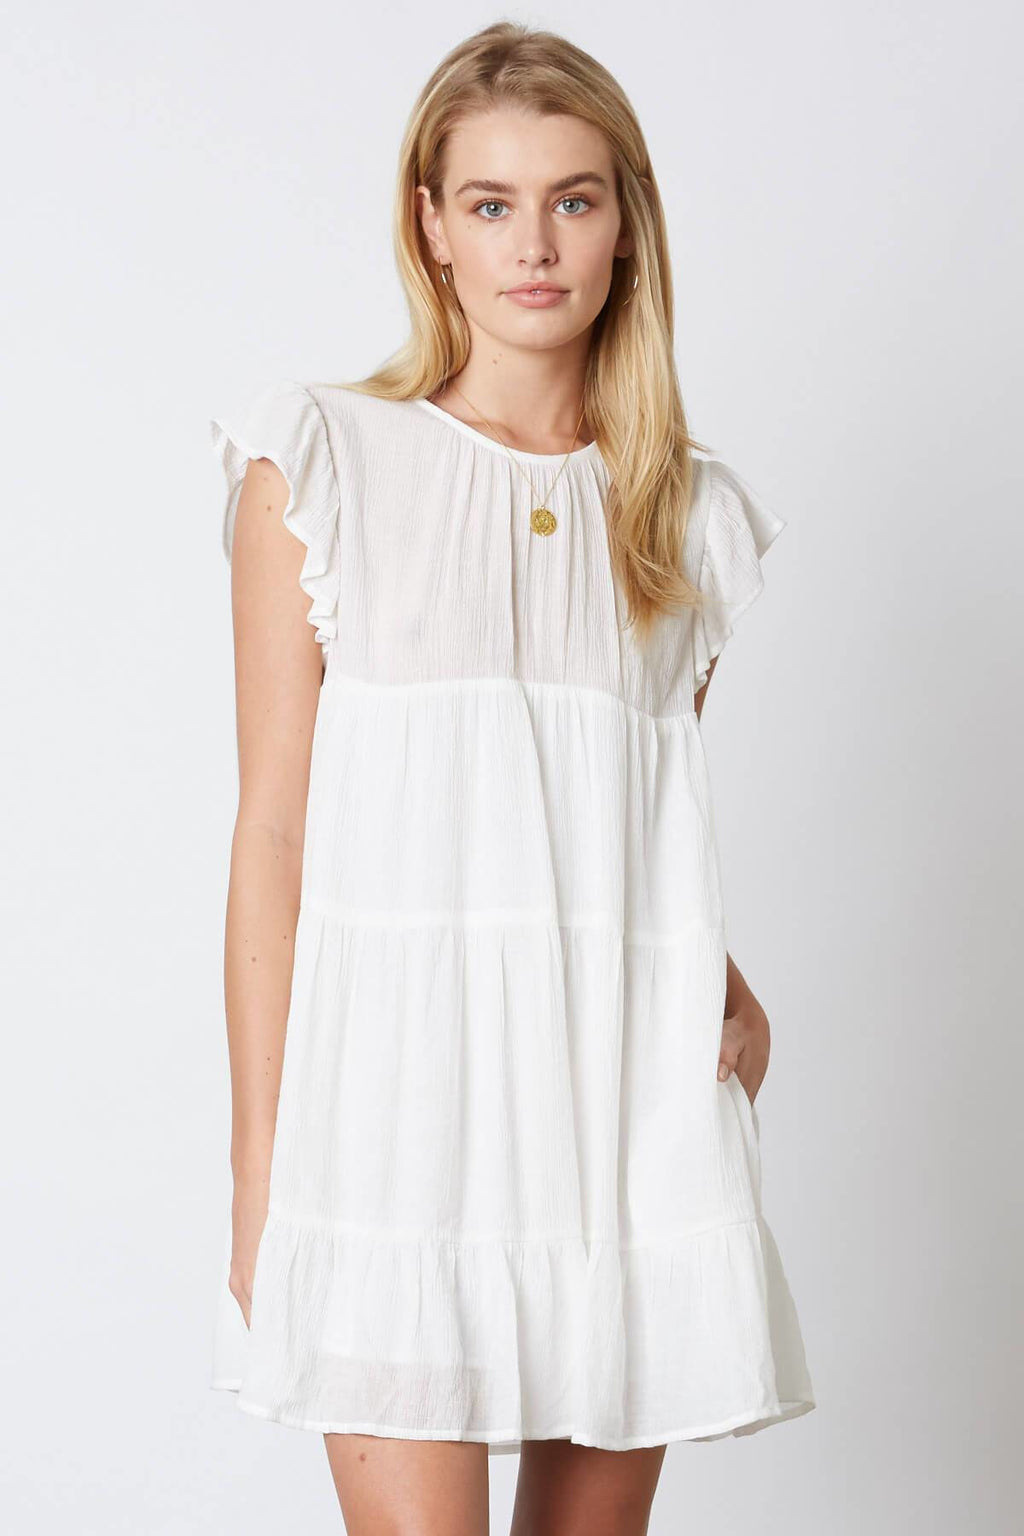 White Baby Doll Dress